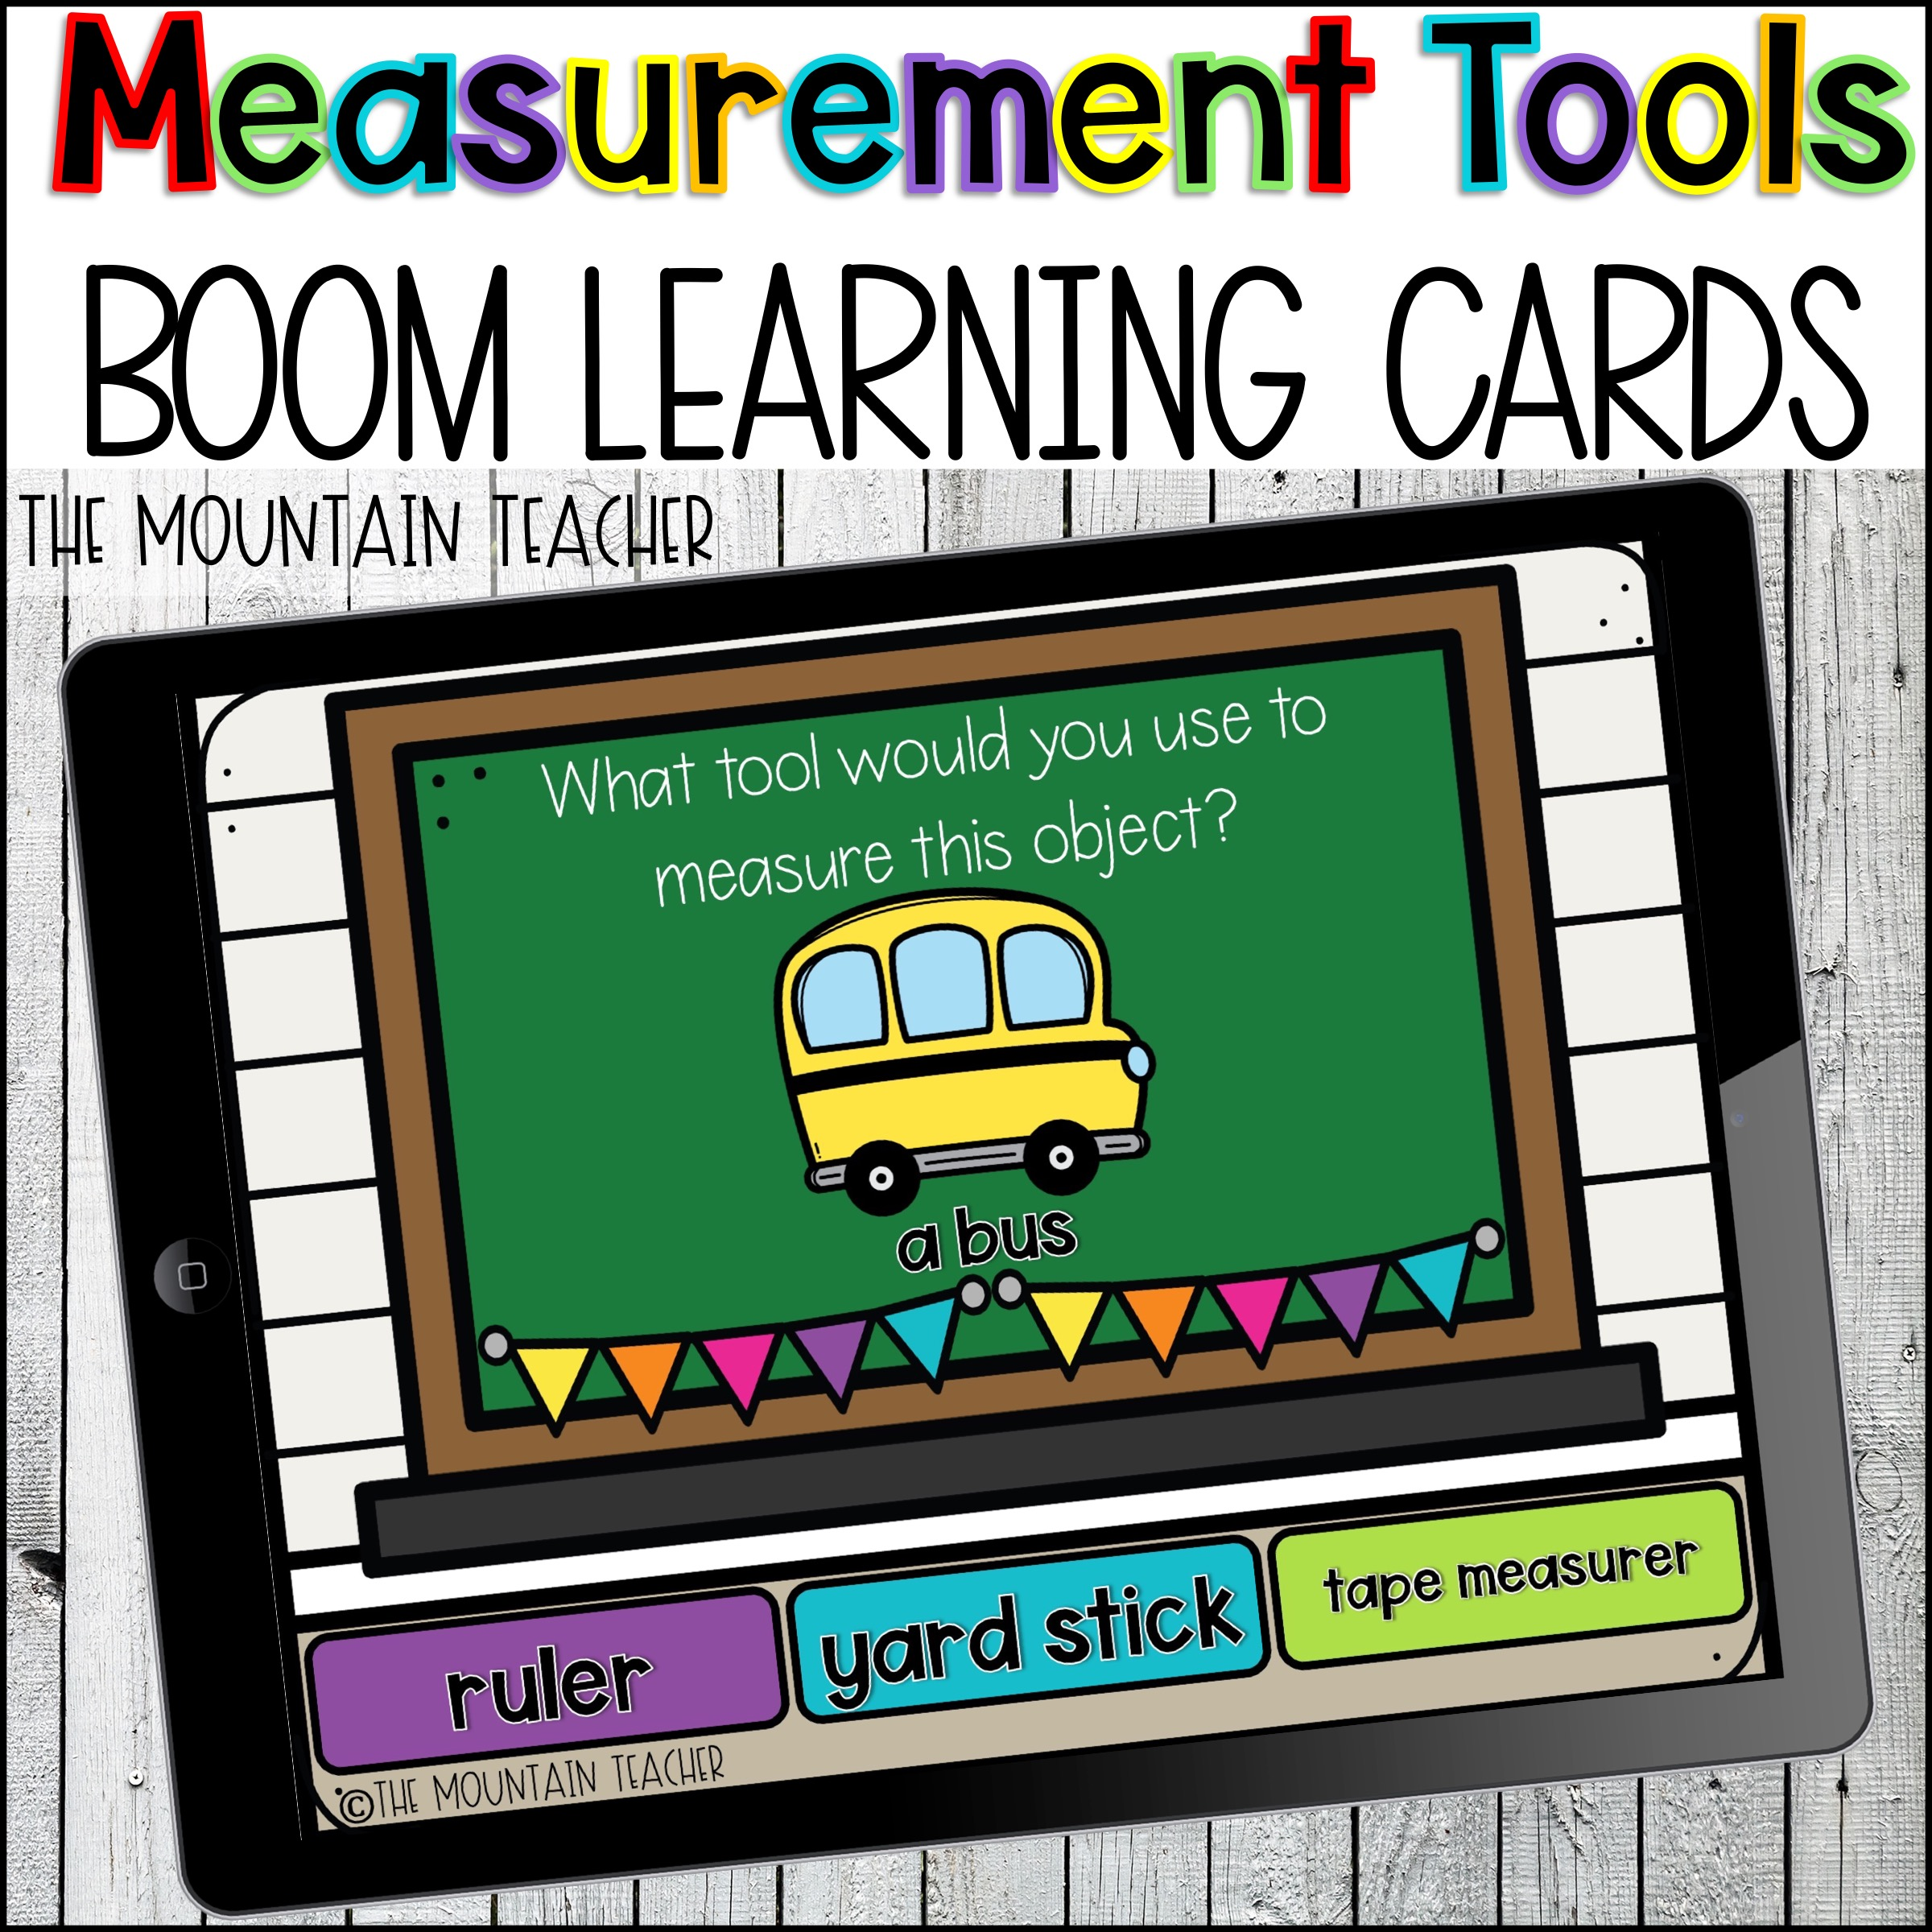 Measurement Tools Measurement Boom Learning Cards by The Mountain Teacher